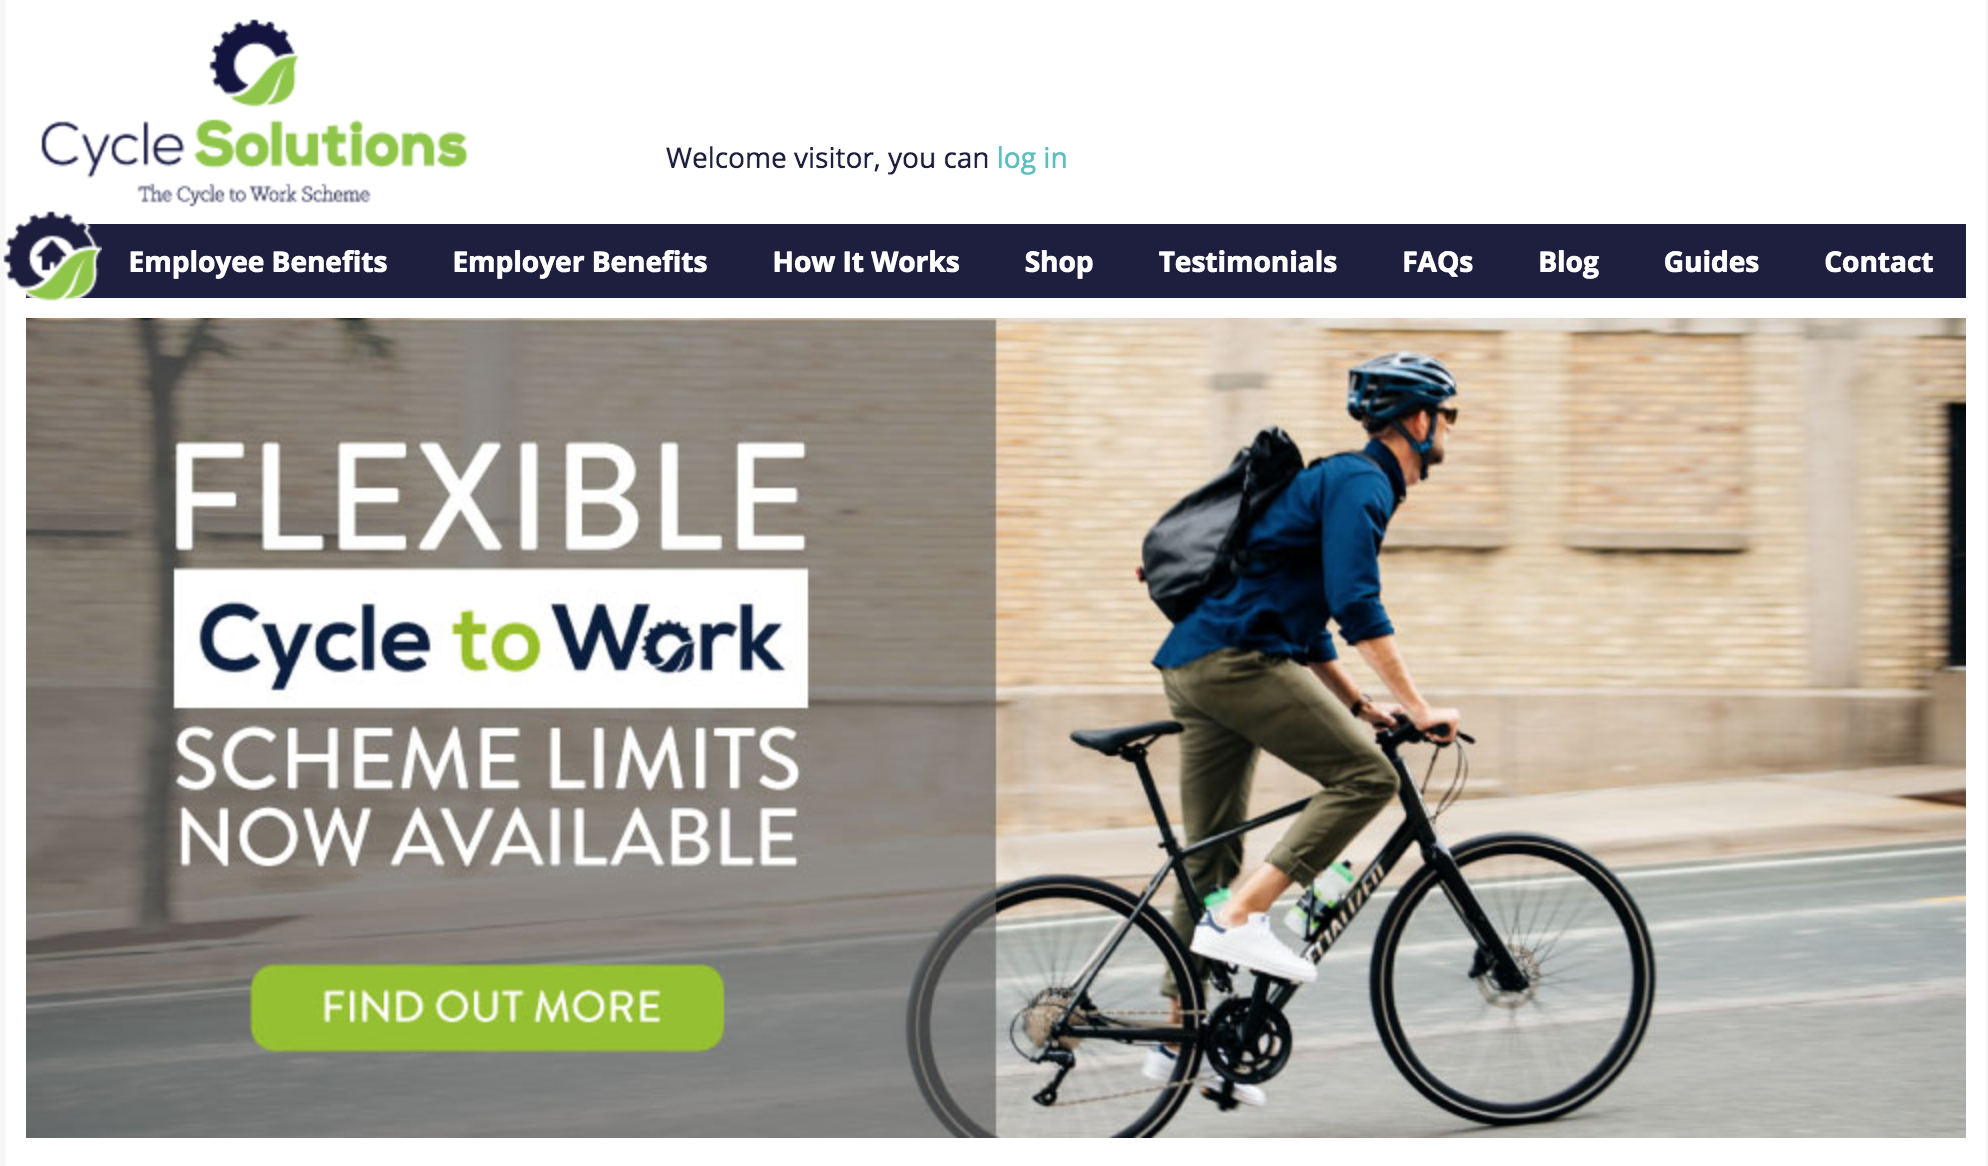 Cycle Solutions cycle to work scheme providers